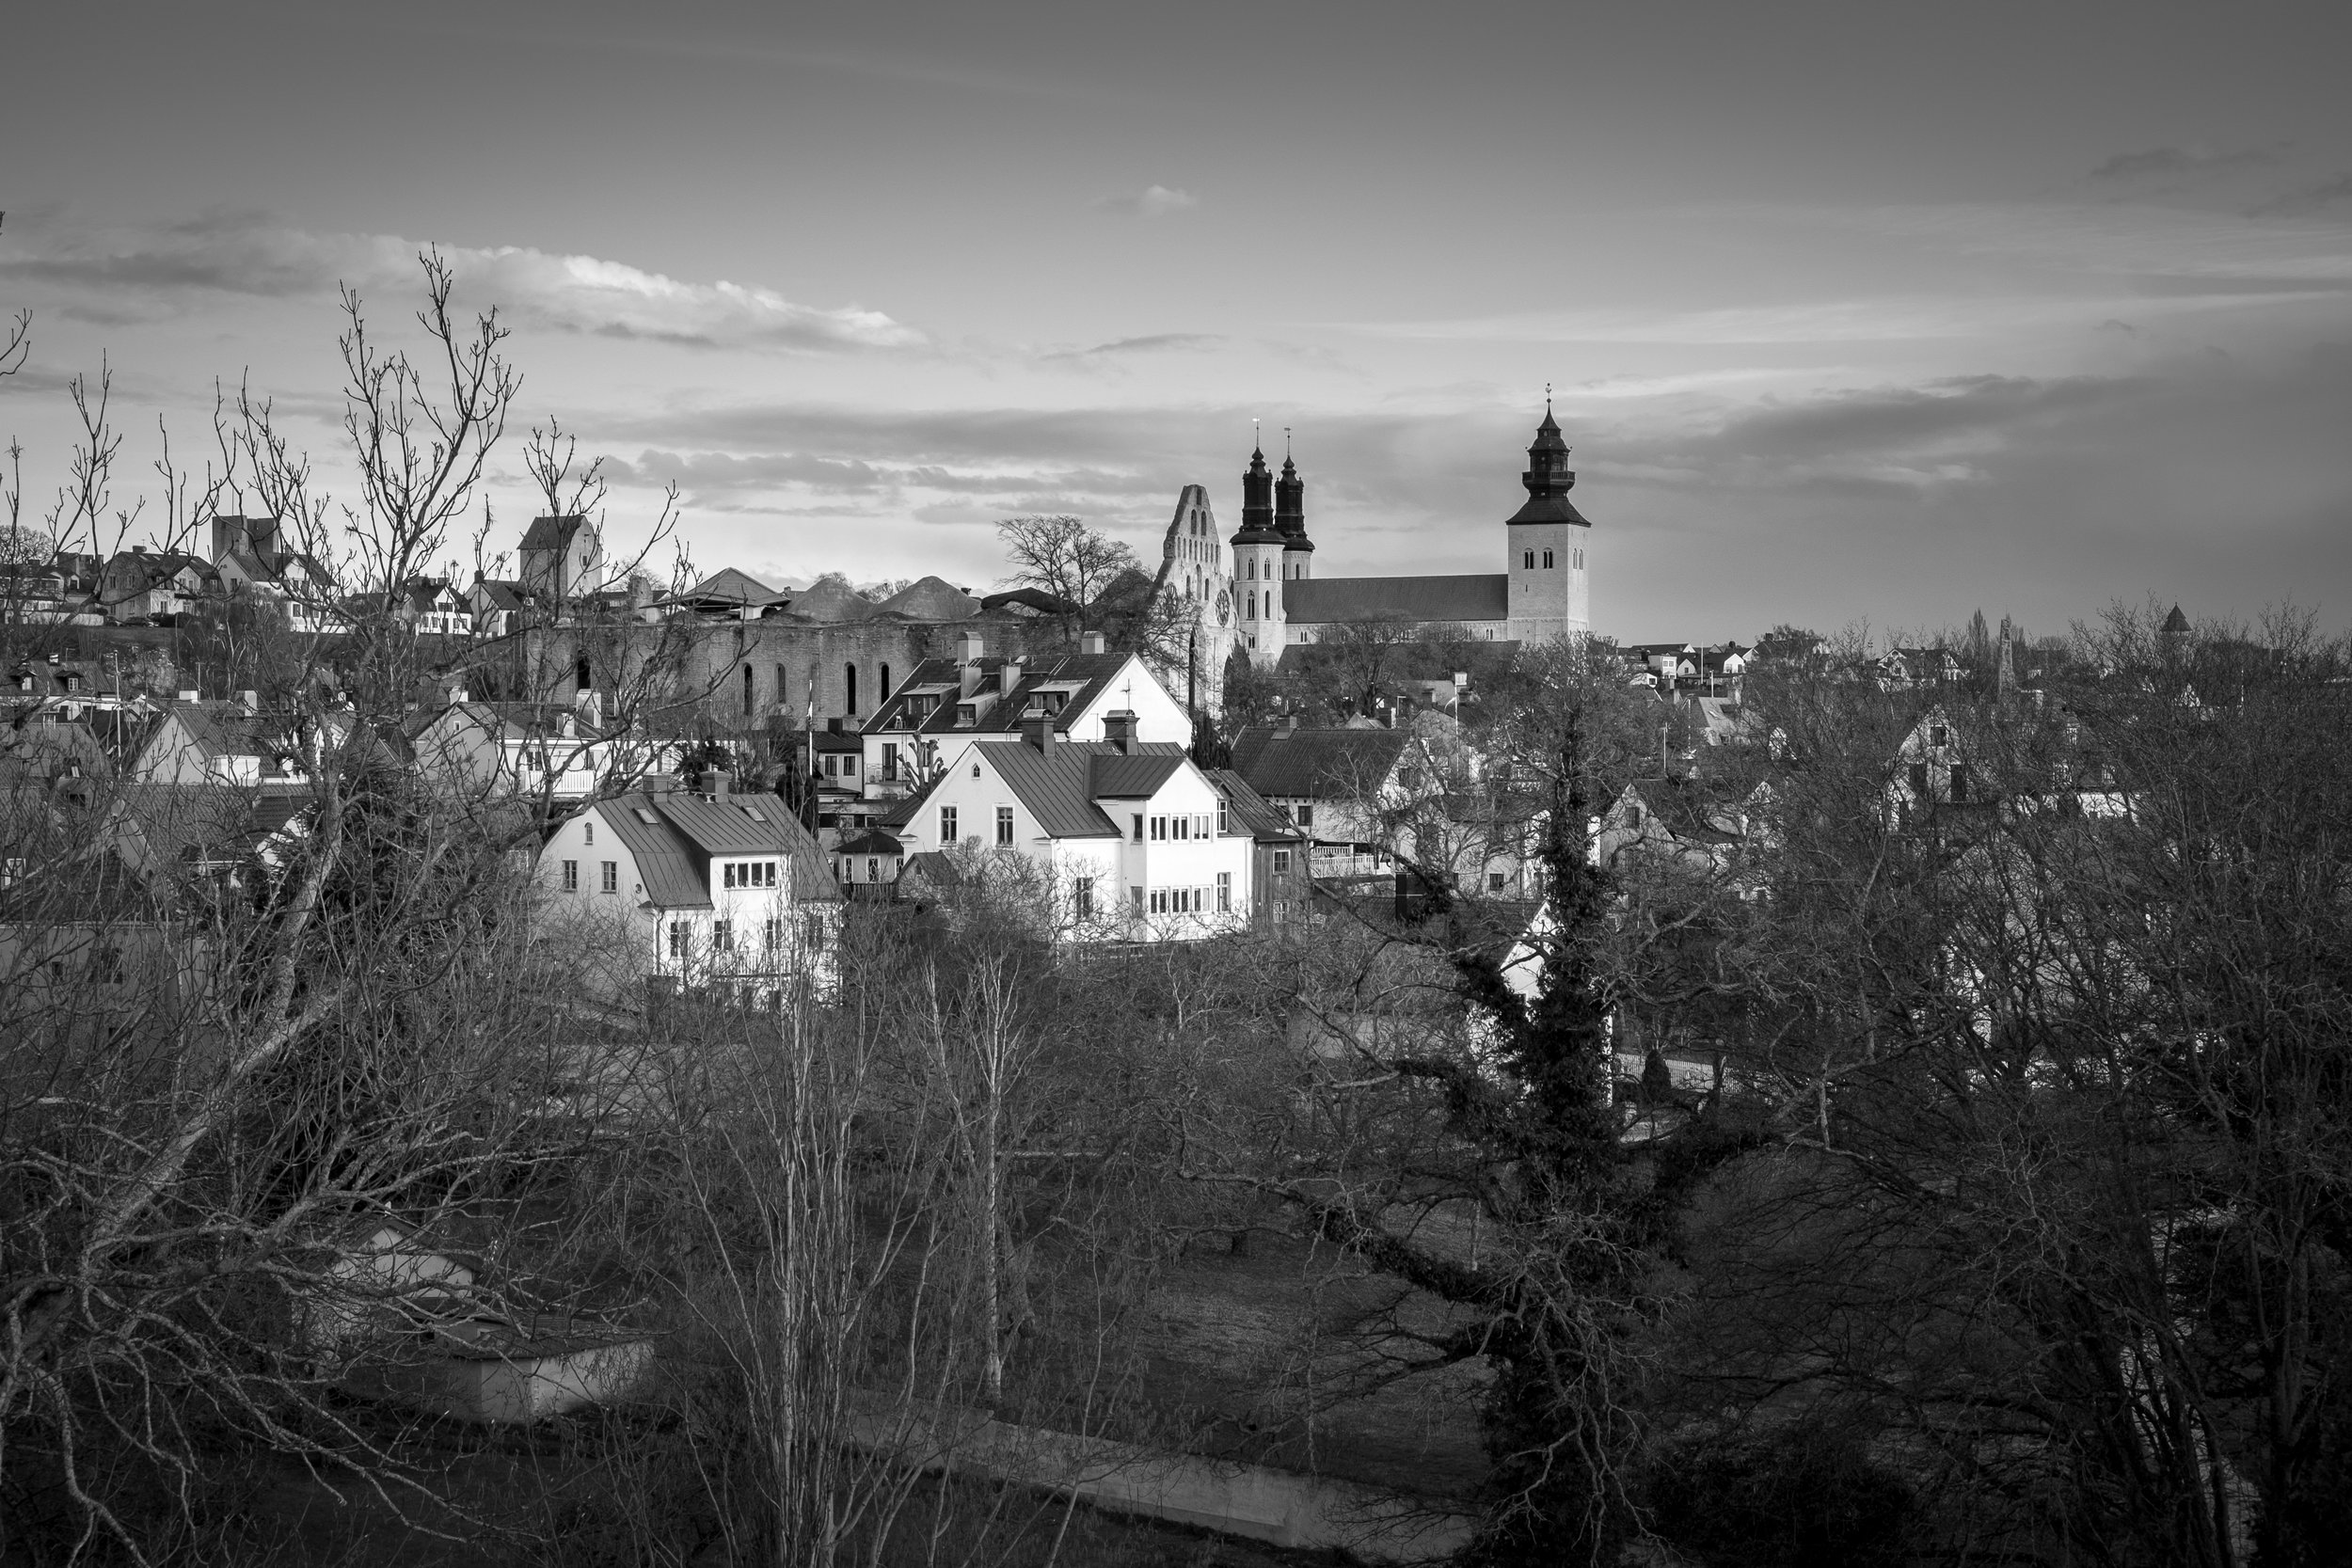 The view over old town Visby from the northern side of the old ring wall.